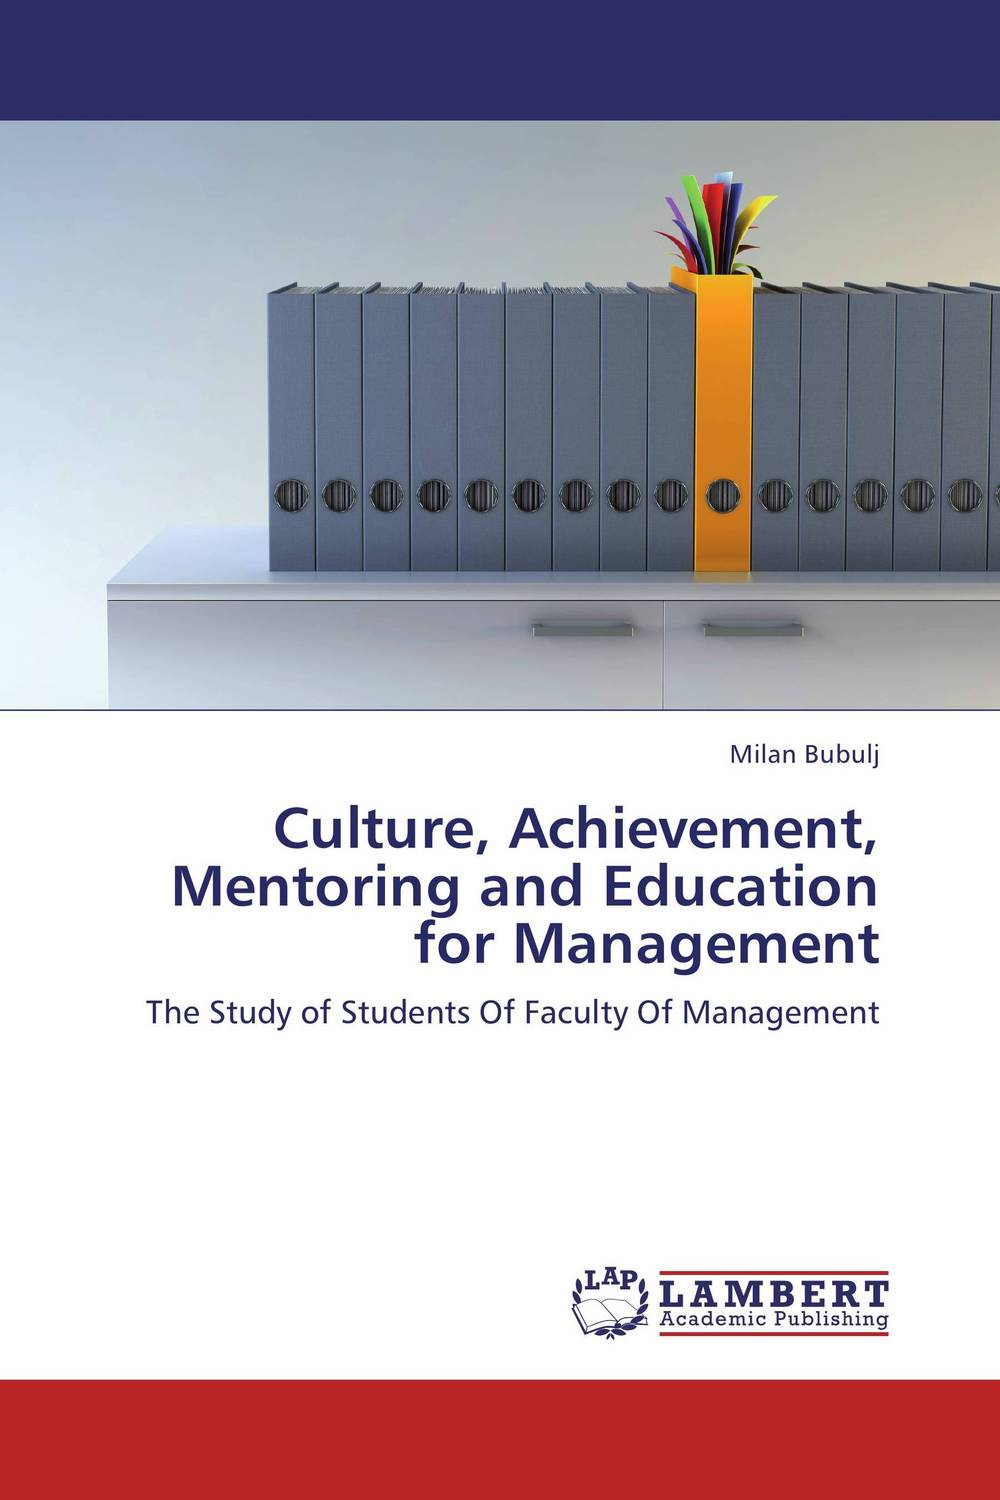 Culture, Achievement, Mentoring and Education for Management